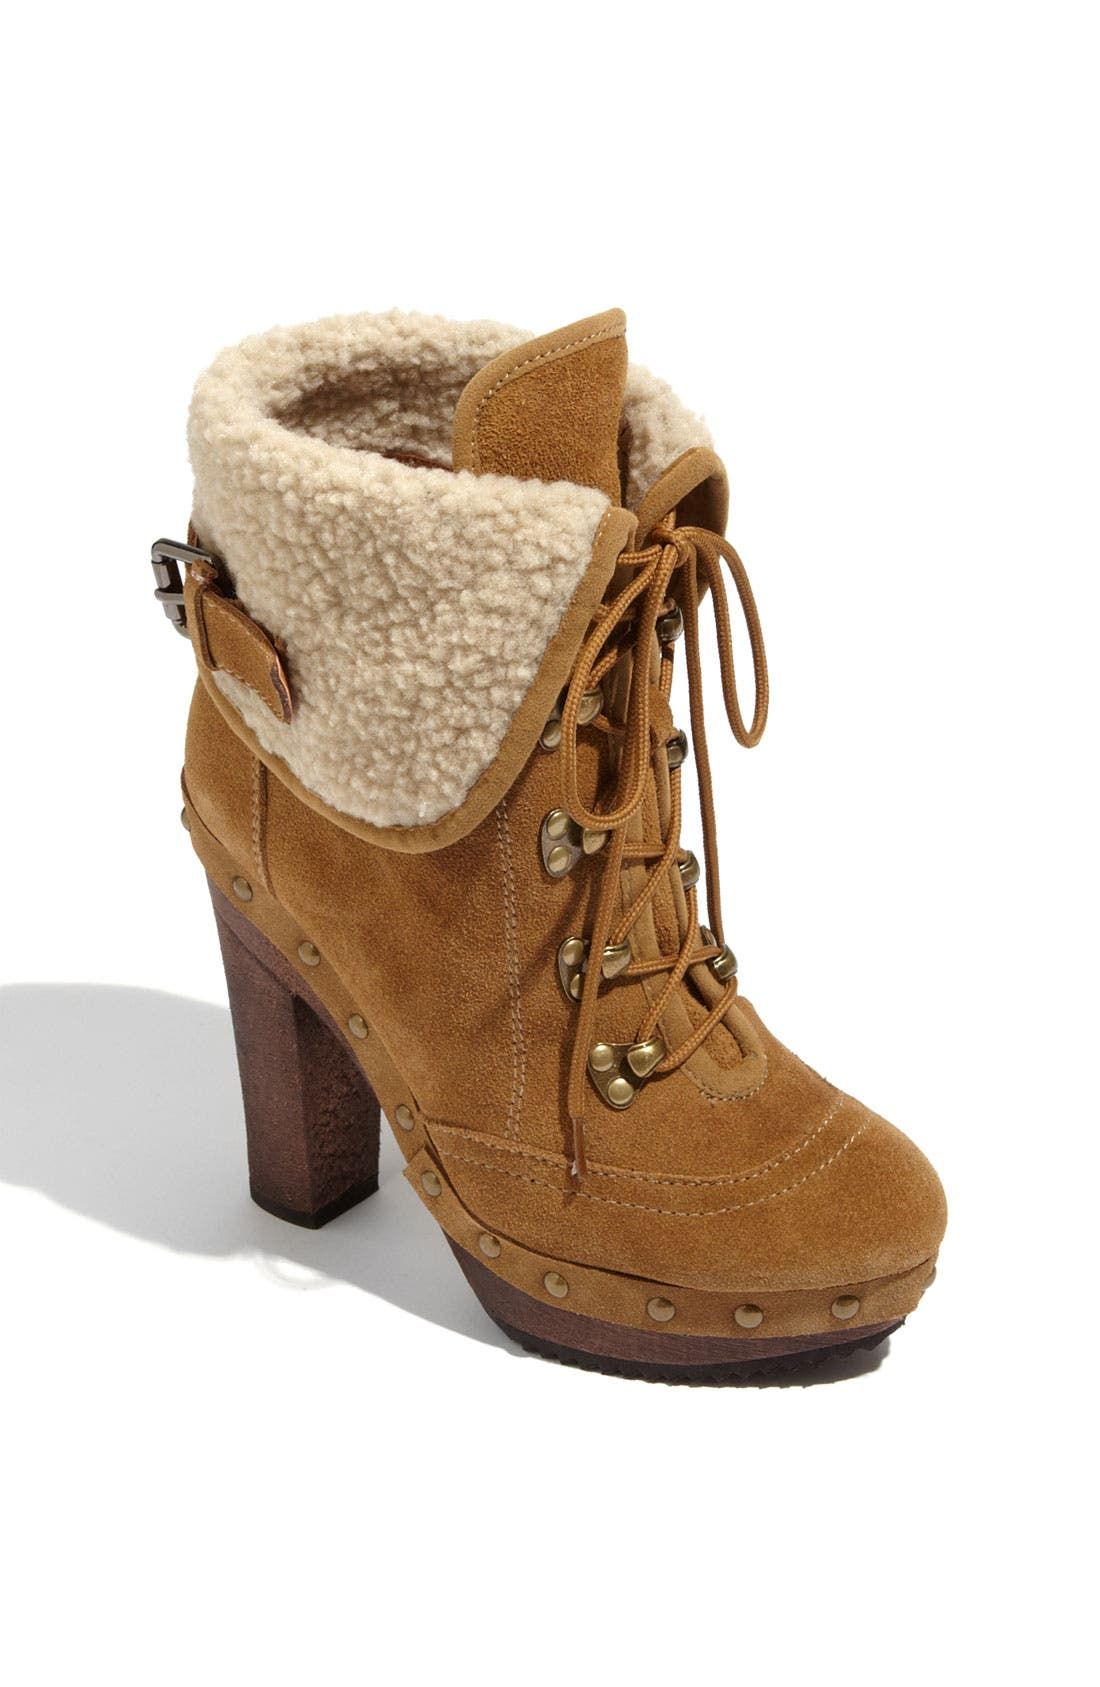 Alternate Image 1 Selected - N.Y.L.A. 'Teodor' Ankle Boot